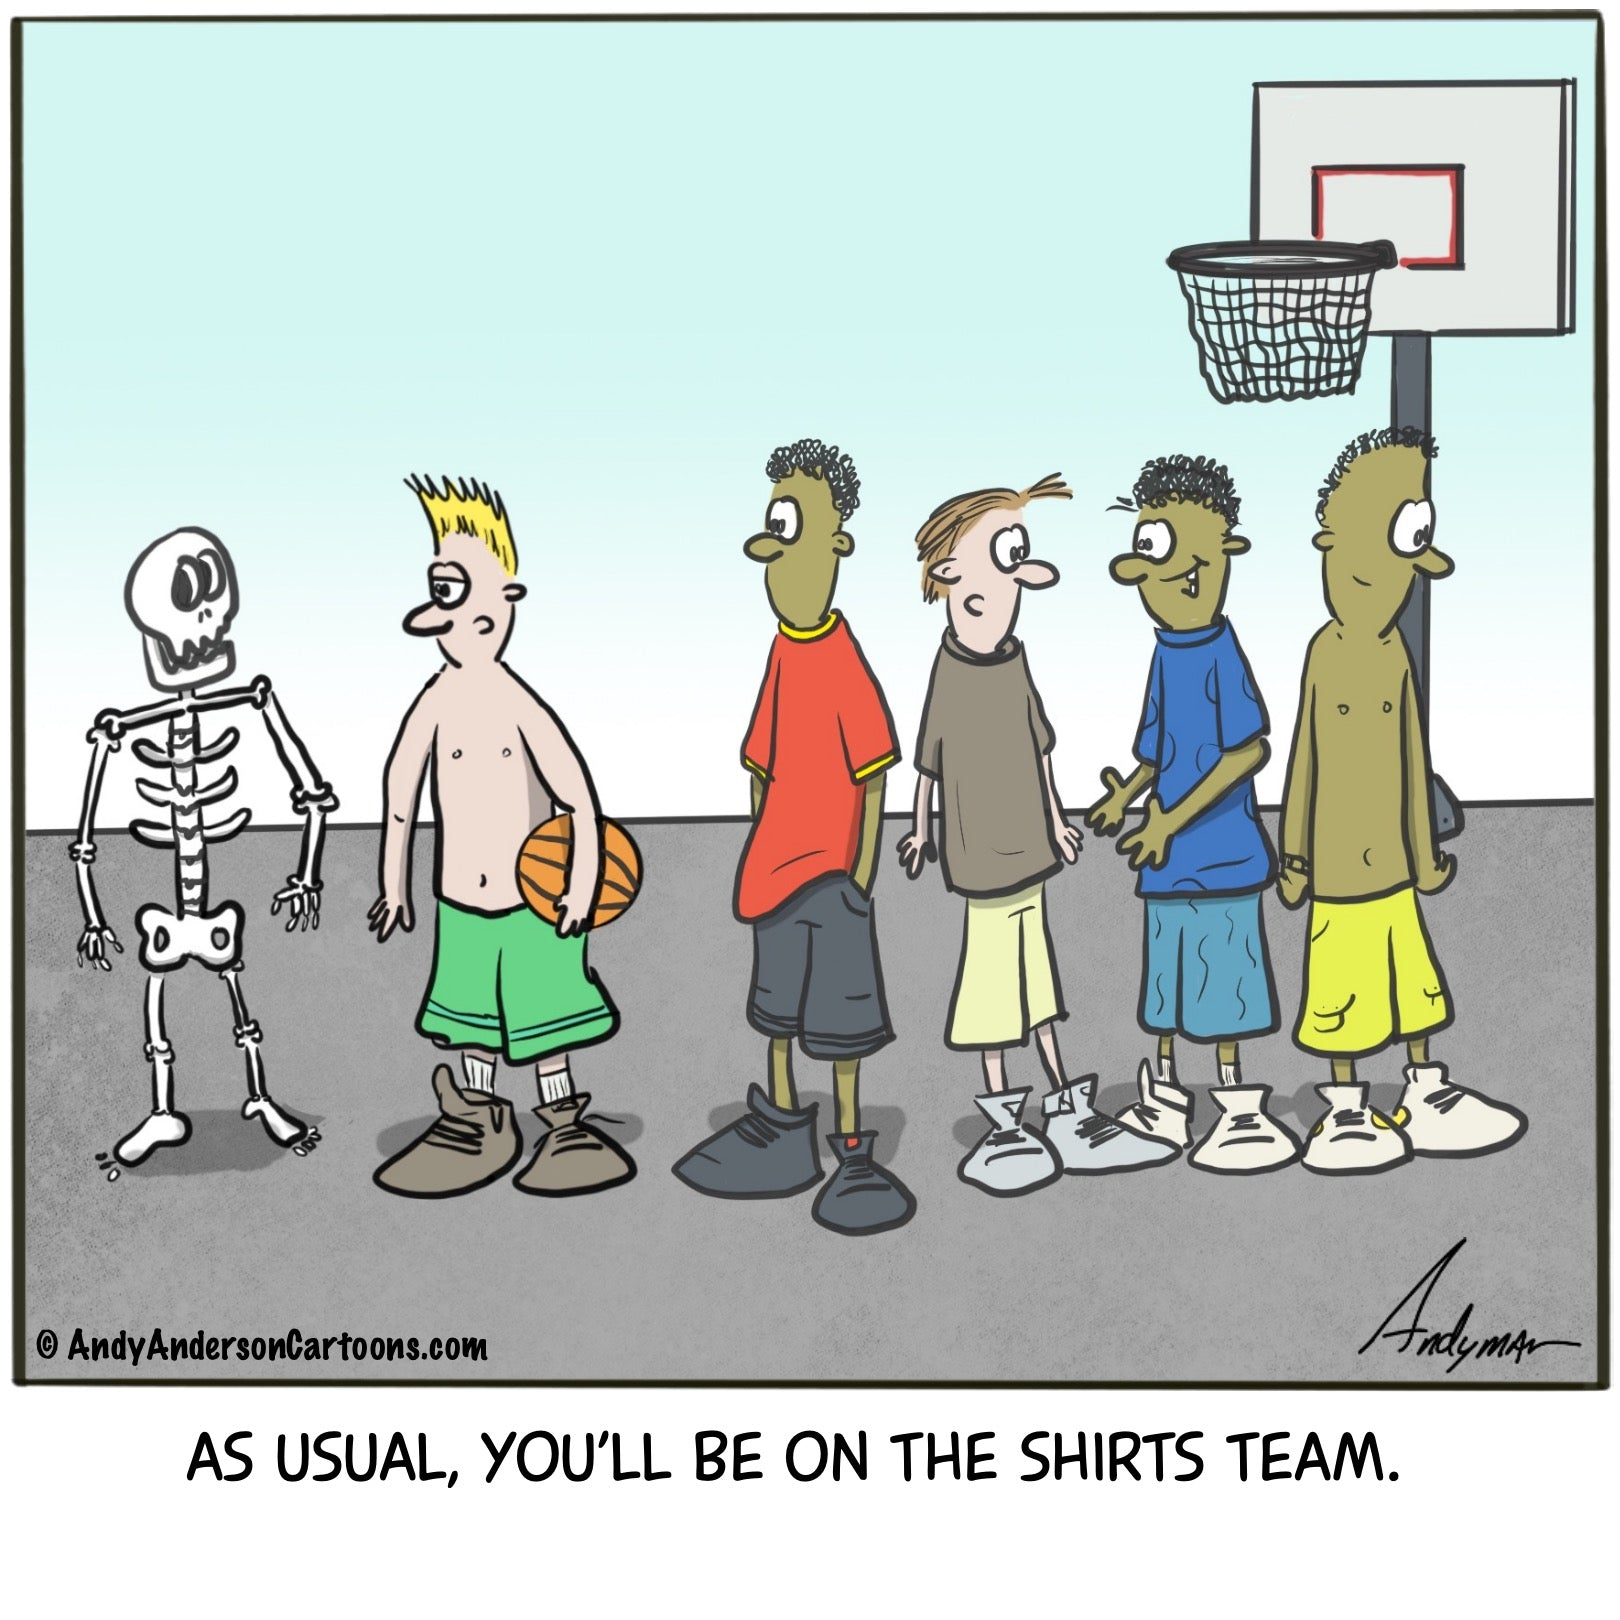 Cartoon about skeleton playing basketball on the shirts team